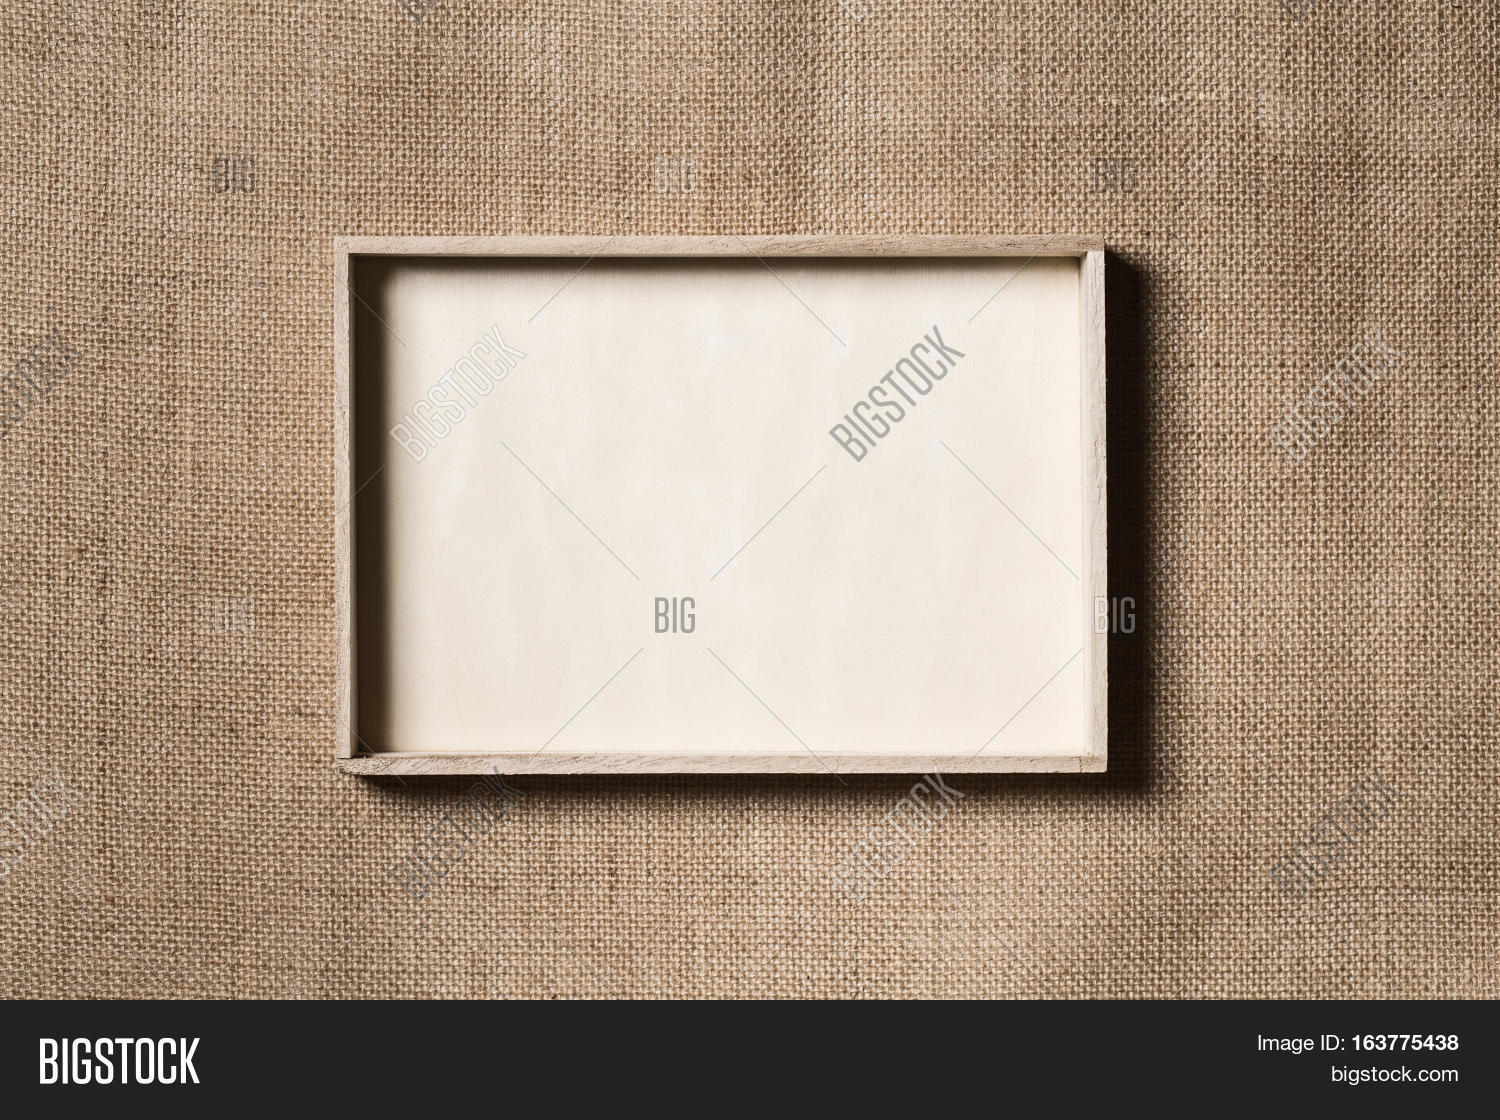 Burlap Frame Wooden Border Over Image Photo Bigstock